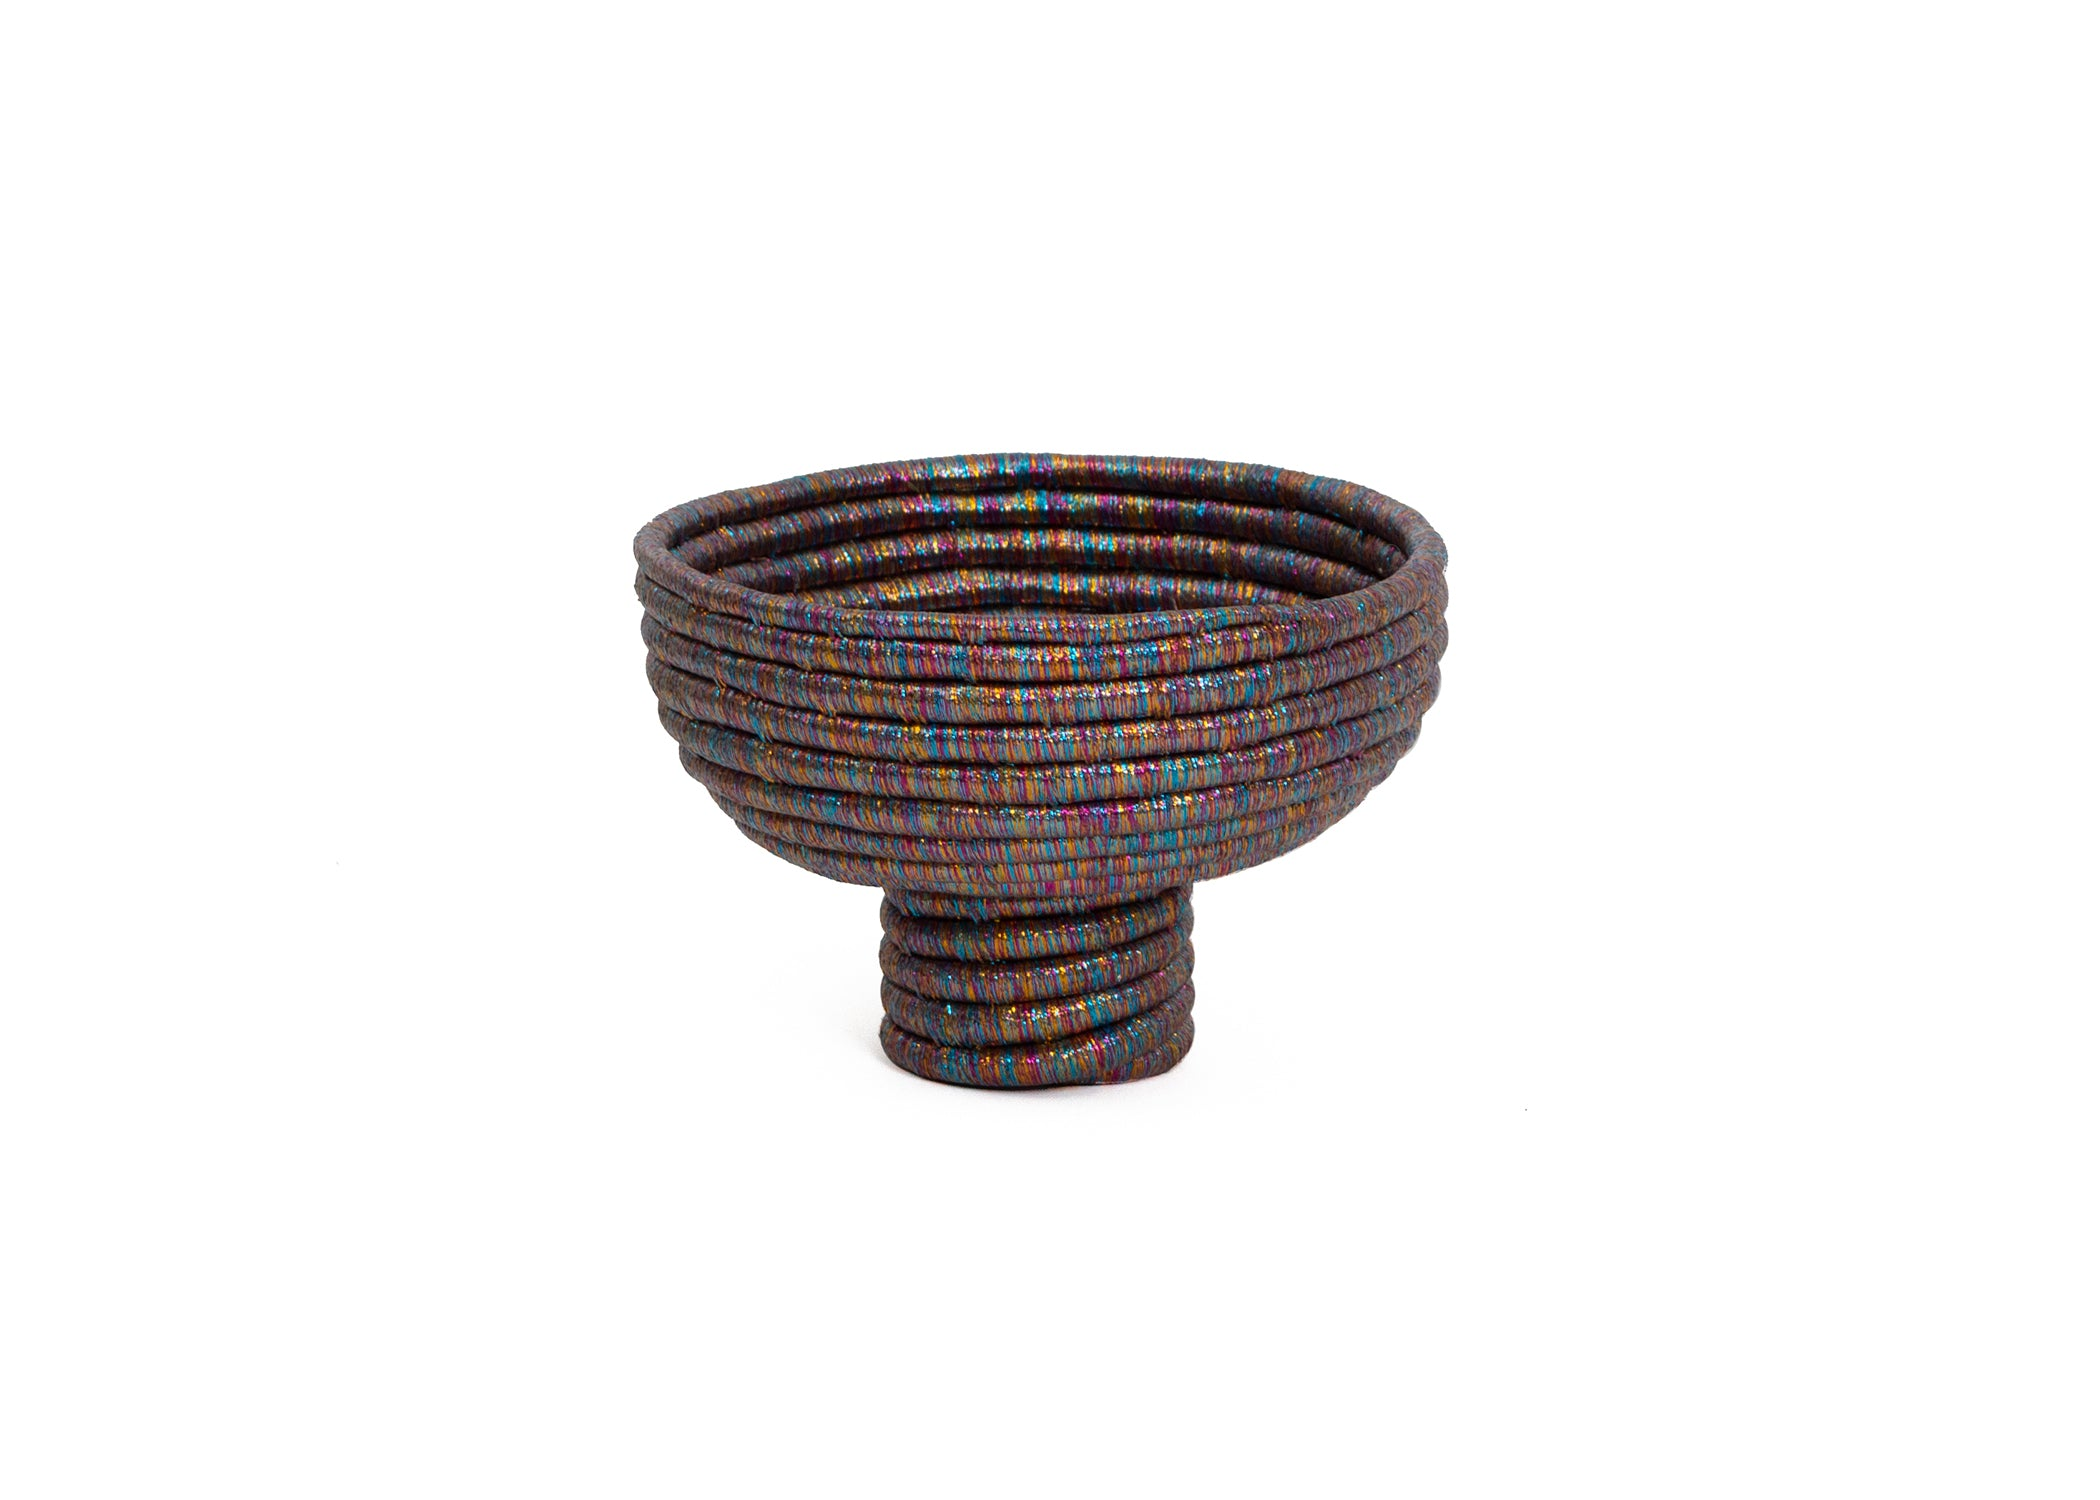 Kaleidoscopic Pedestal Bowl I - KAZI - Artisan made high quality home decor and wall art